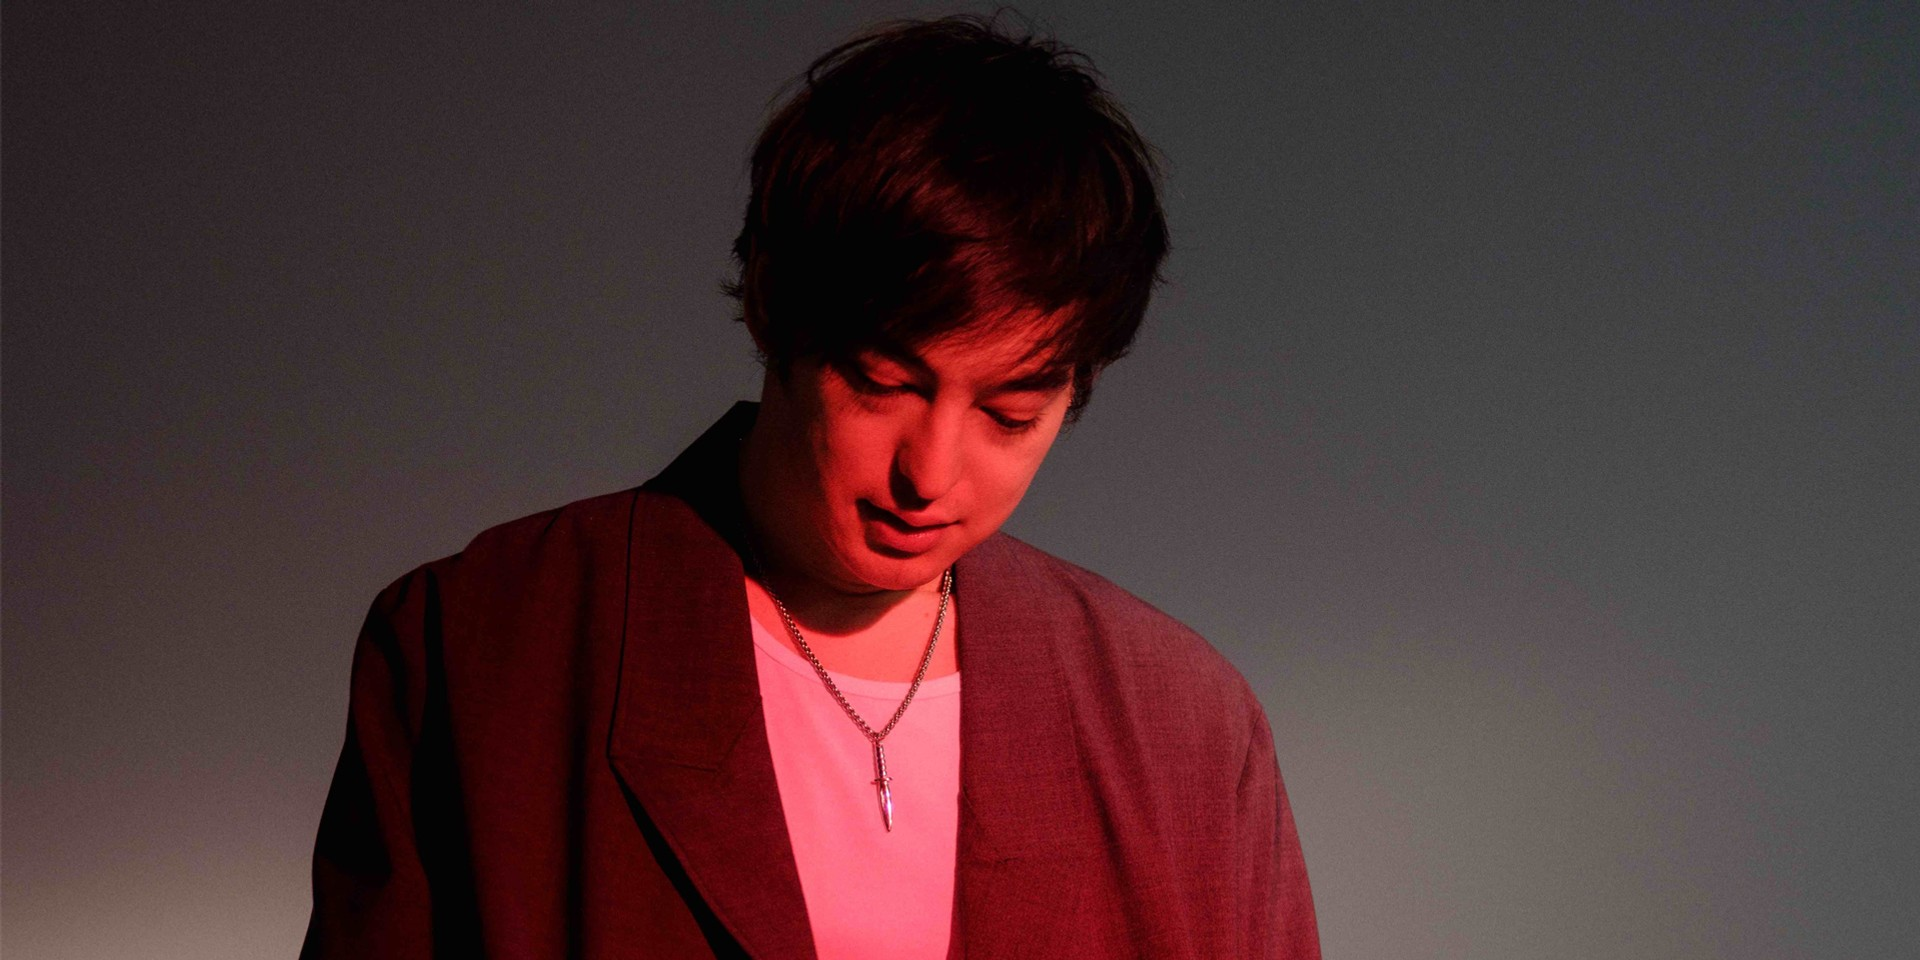 Joji to hold first online concert The Extravaganza with never-before-seen hijinks and more